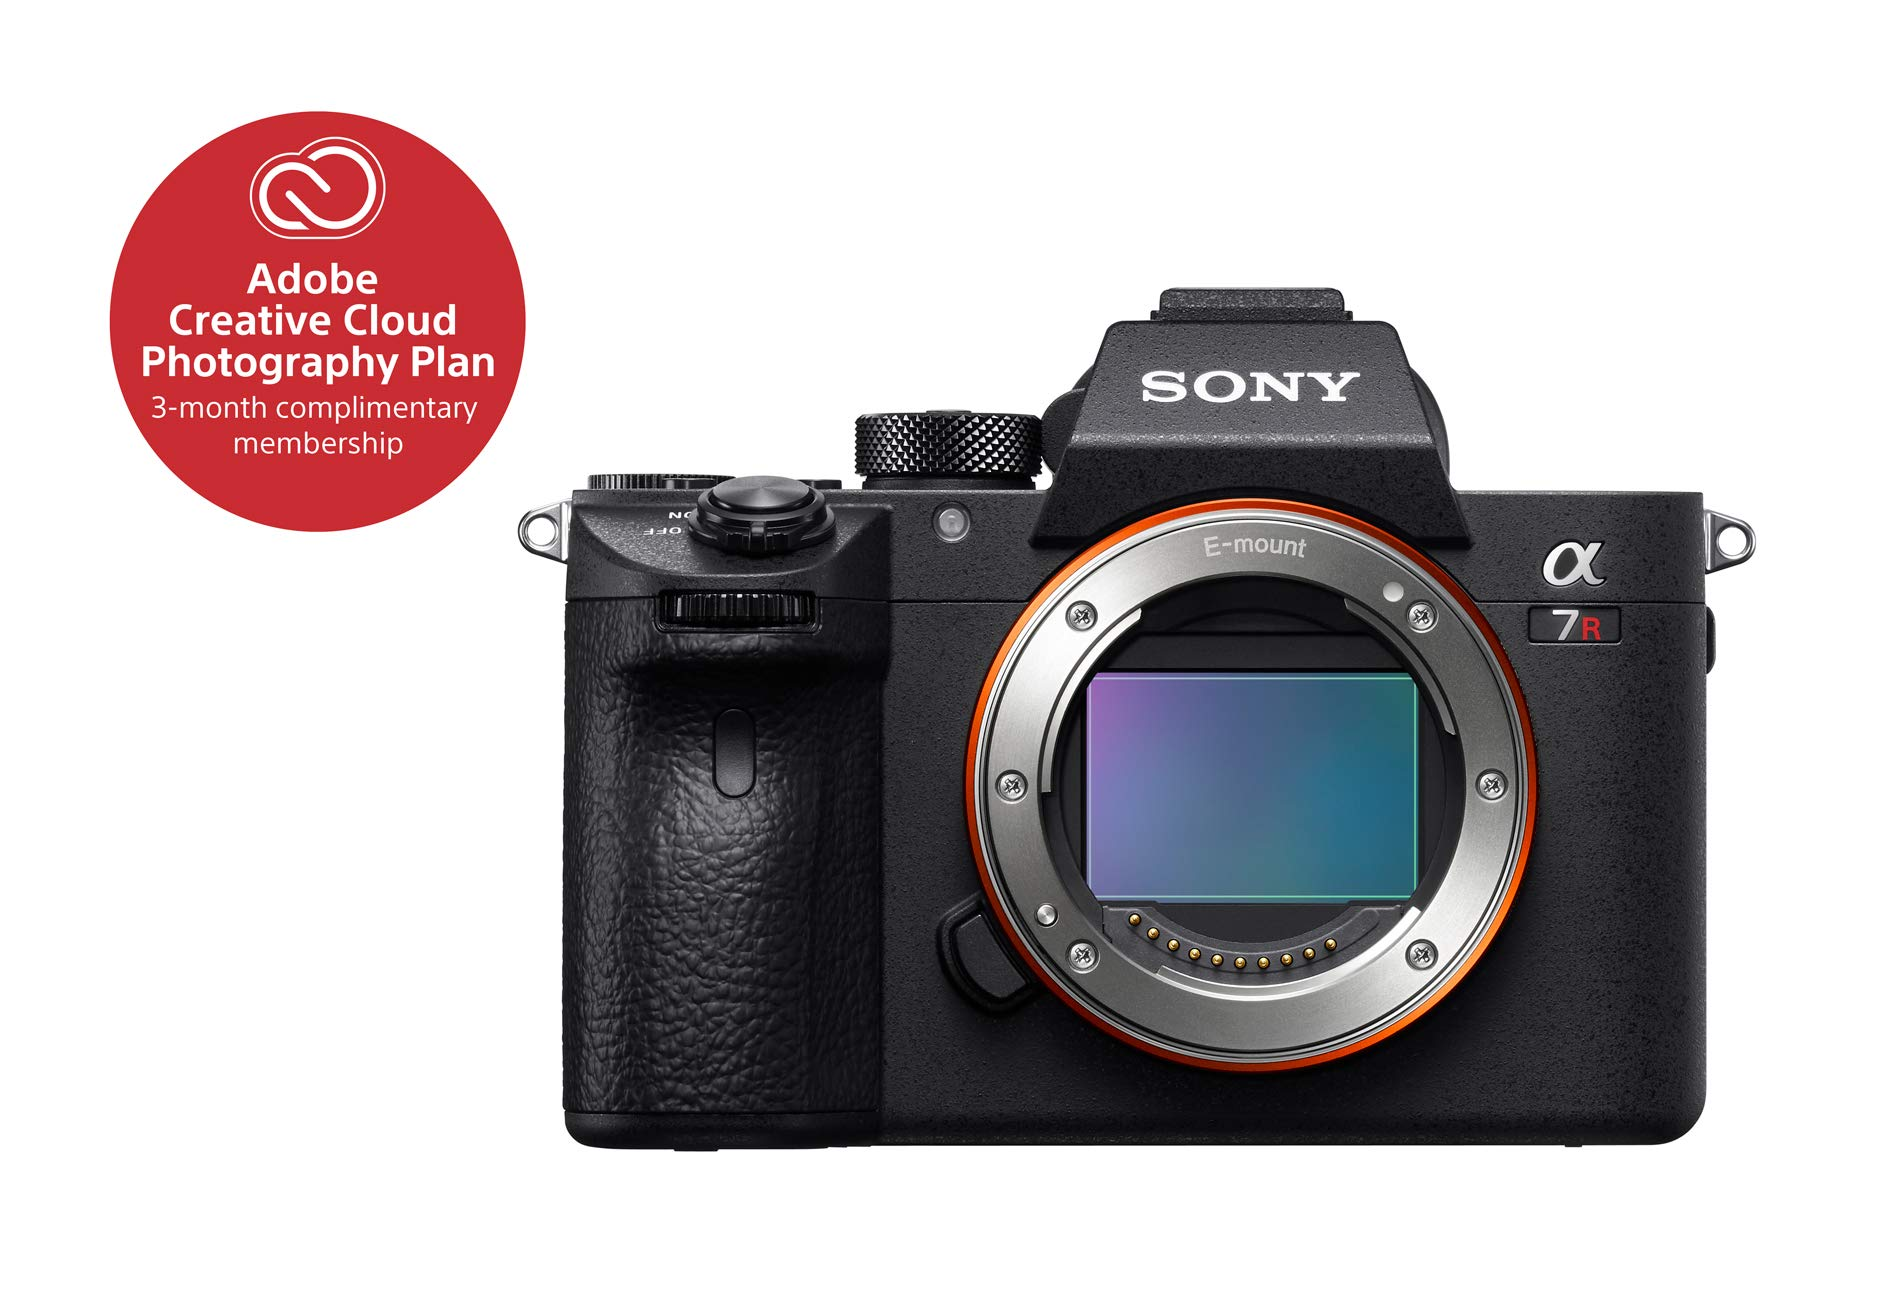 Sony a7R III 42.4MP Full-Frame Mirrorless Interchangeable-Lens Camera - 71H4kQNBlrL - Sony a7R III 42.4MP Full-Frame Mirrorless Interchangeable-Lens Camera